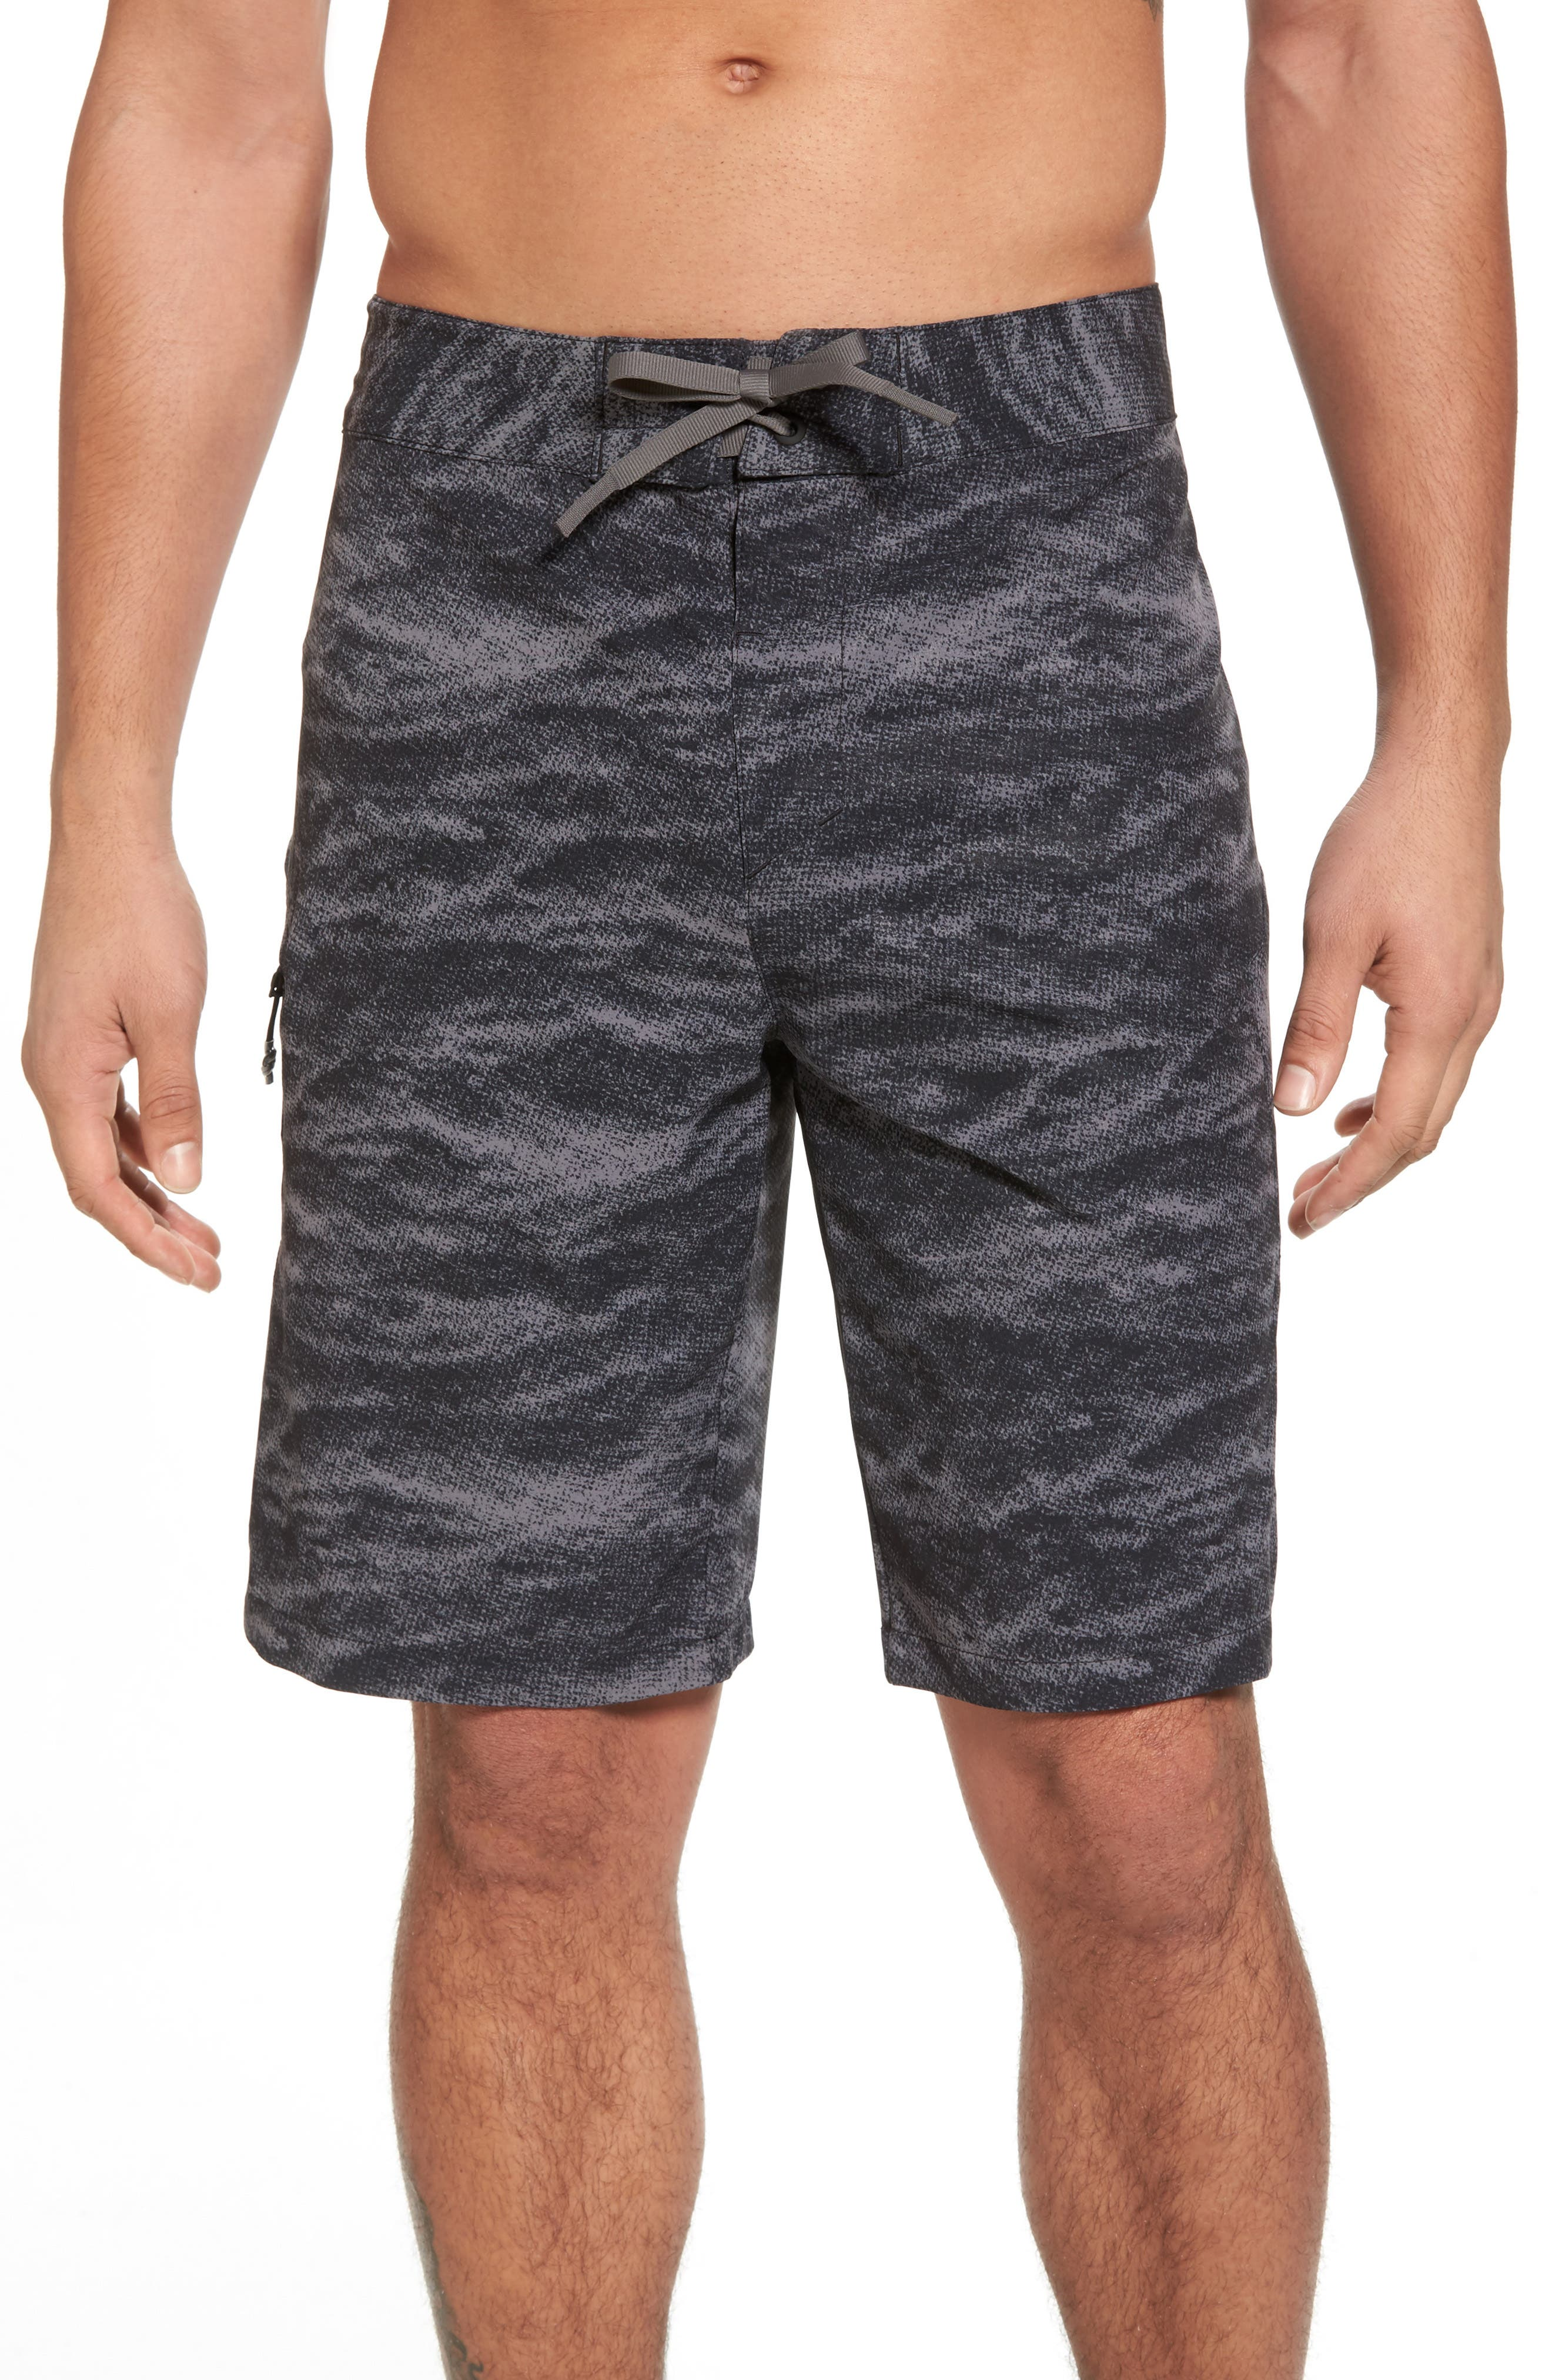 UNDER ARMOUR Print Board Shorts, Main, color, 004